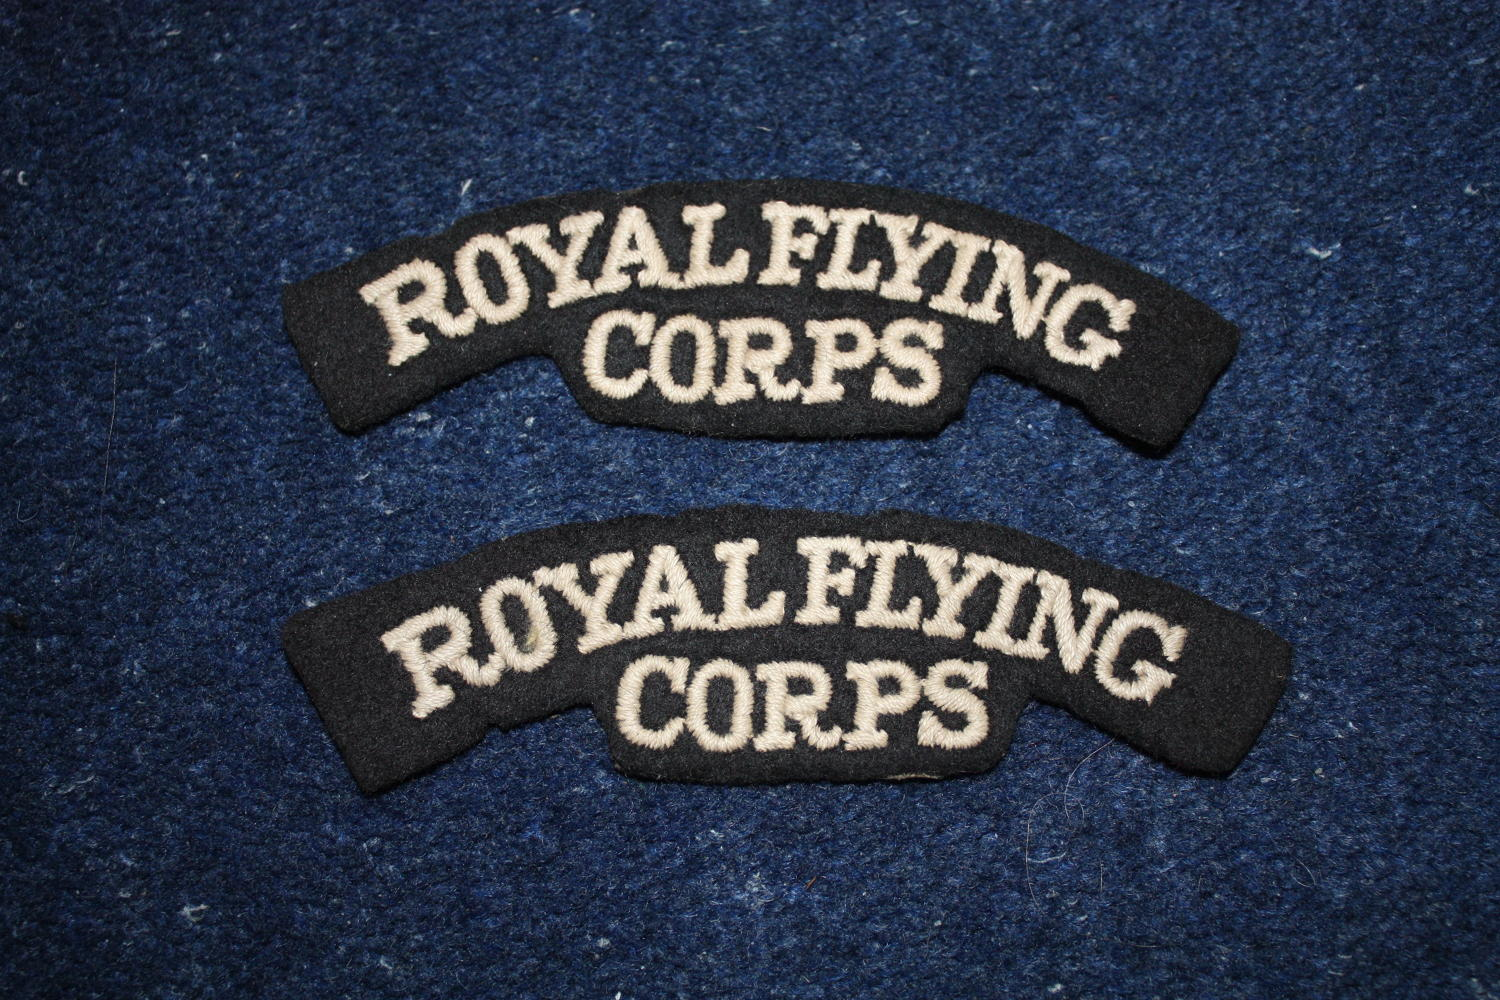 WW1 BRITISH ROYAL FLYING CORPS PAIR SHOULDER TITLES